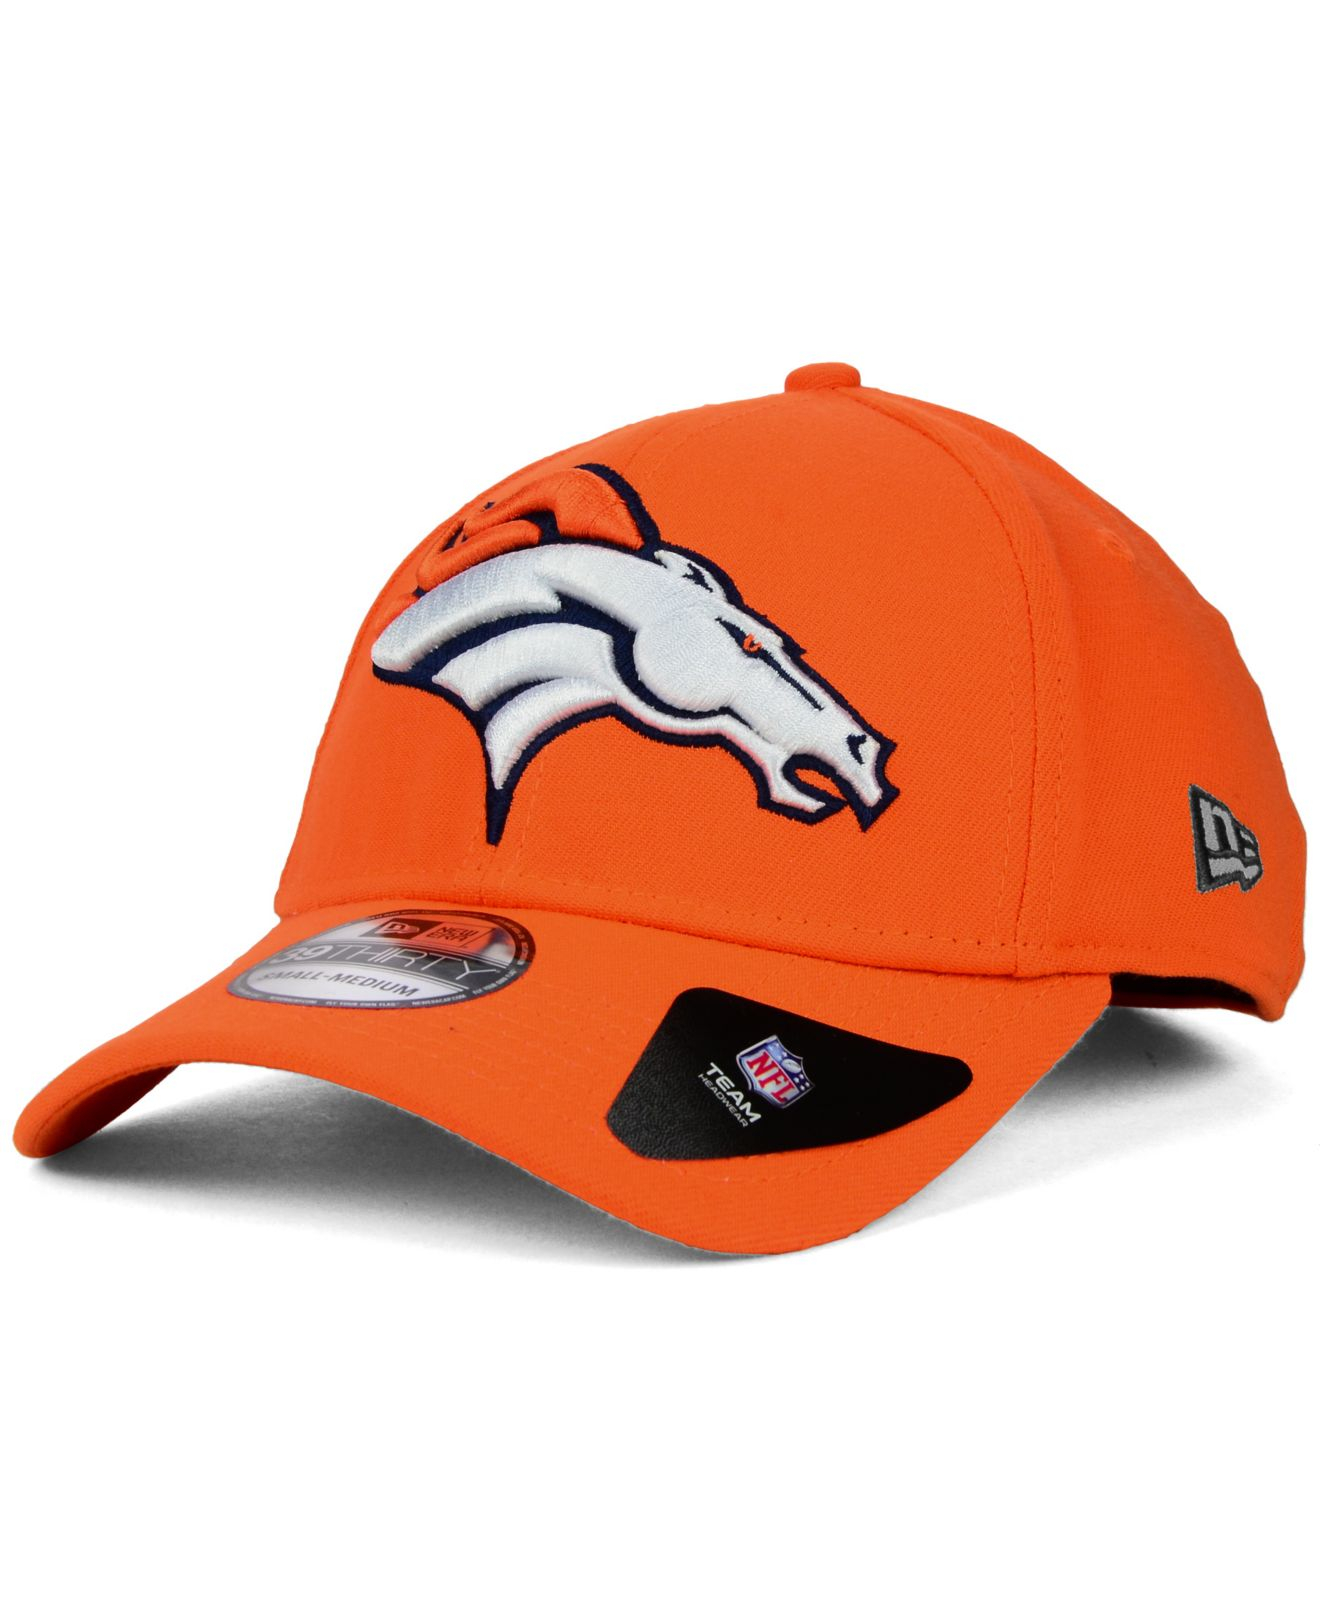 7ce2e984864bc3 ... fitted hats denvernew era hat a24e3 0a308; get lyst ktz denver broncos  mighty classic 39thirty cap in orange 99d03 9fc01